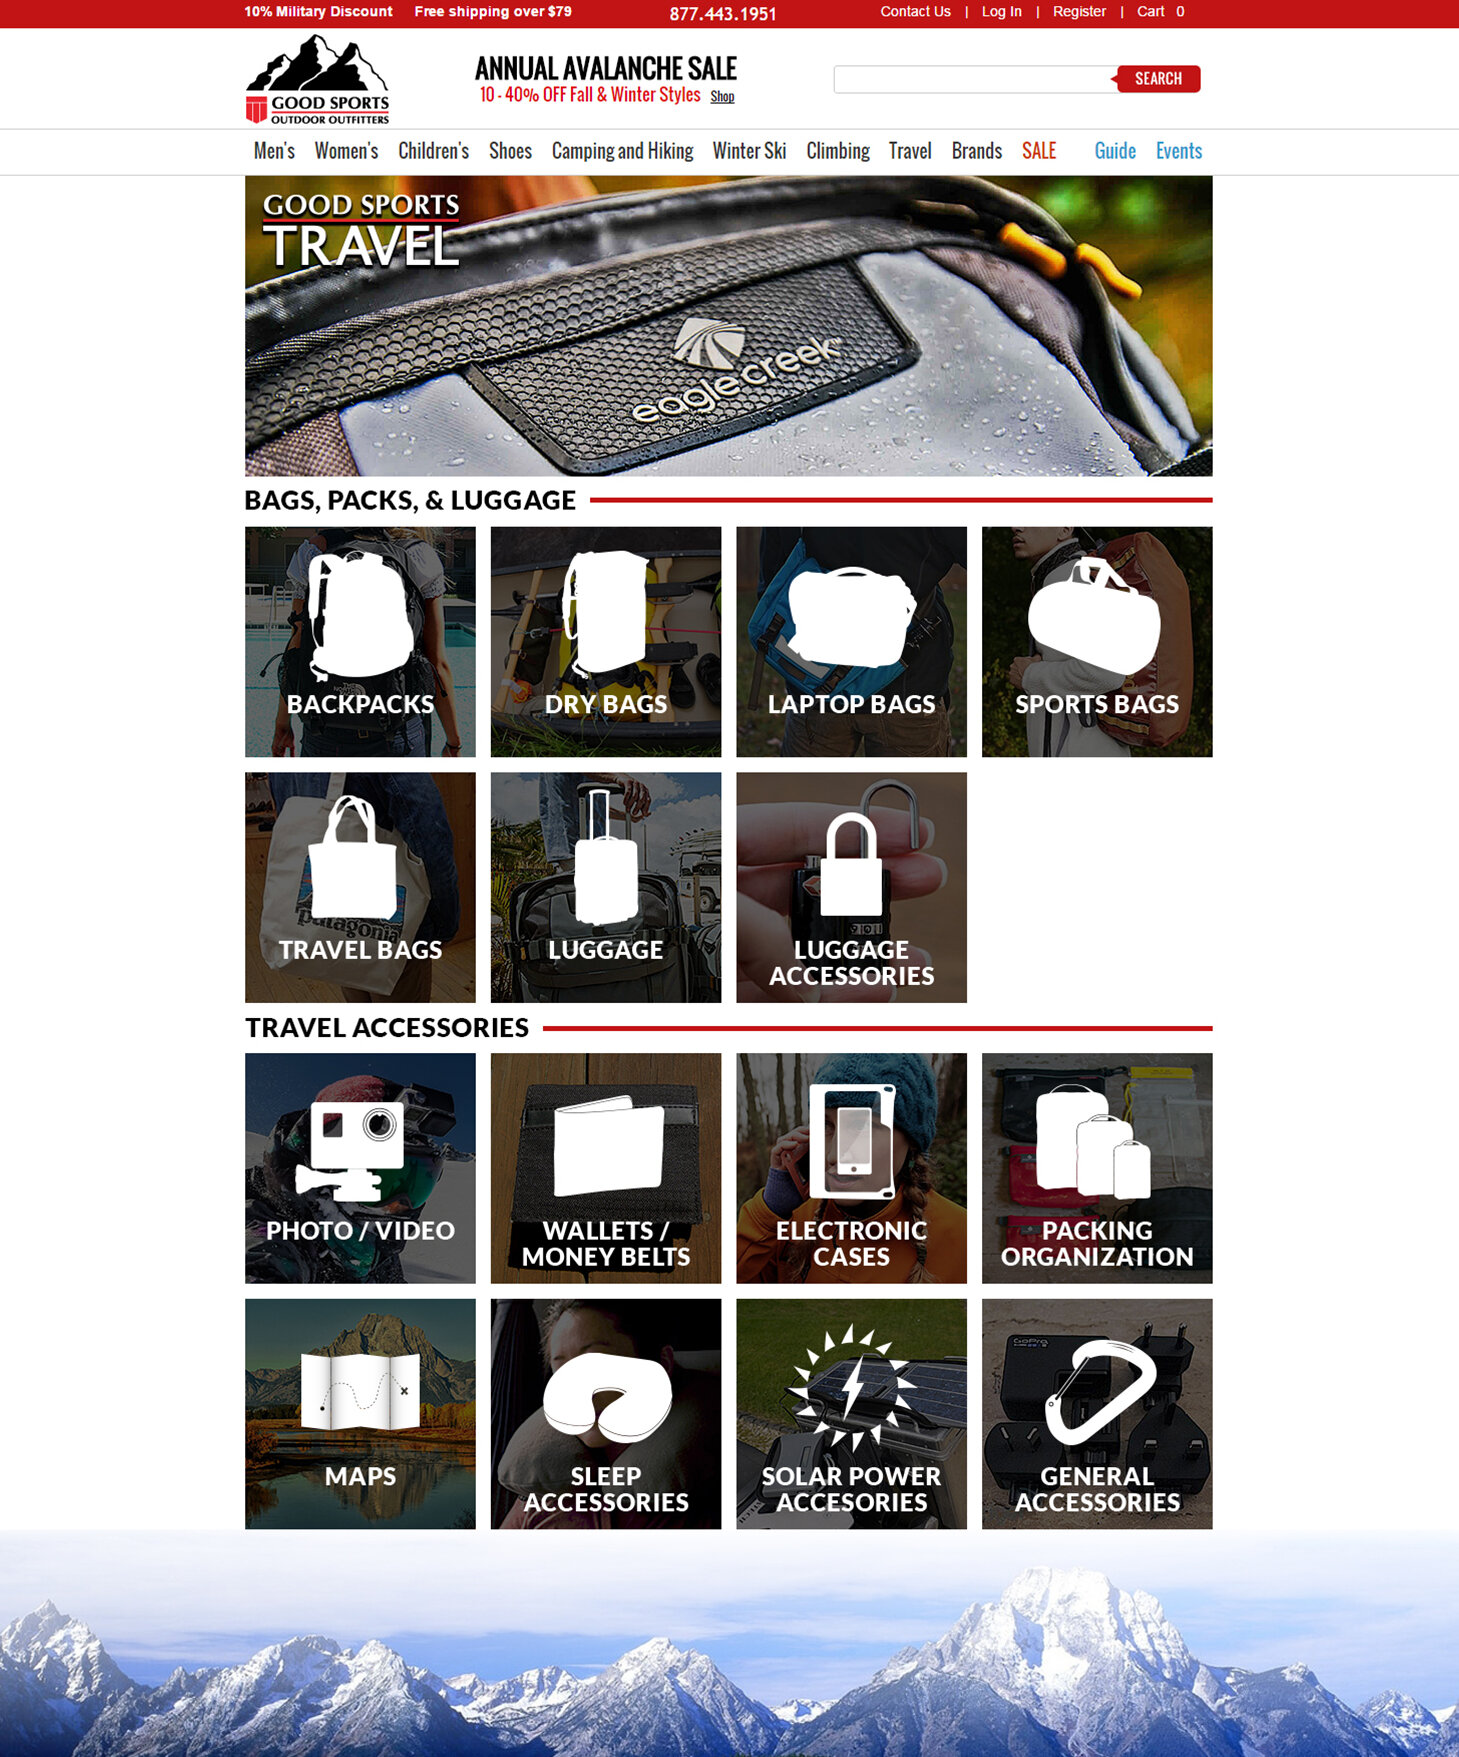 Travel Store Page Redesign